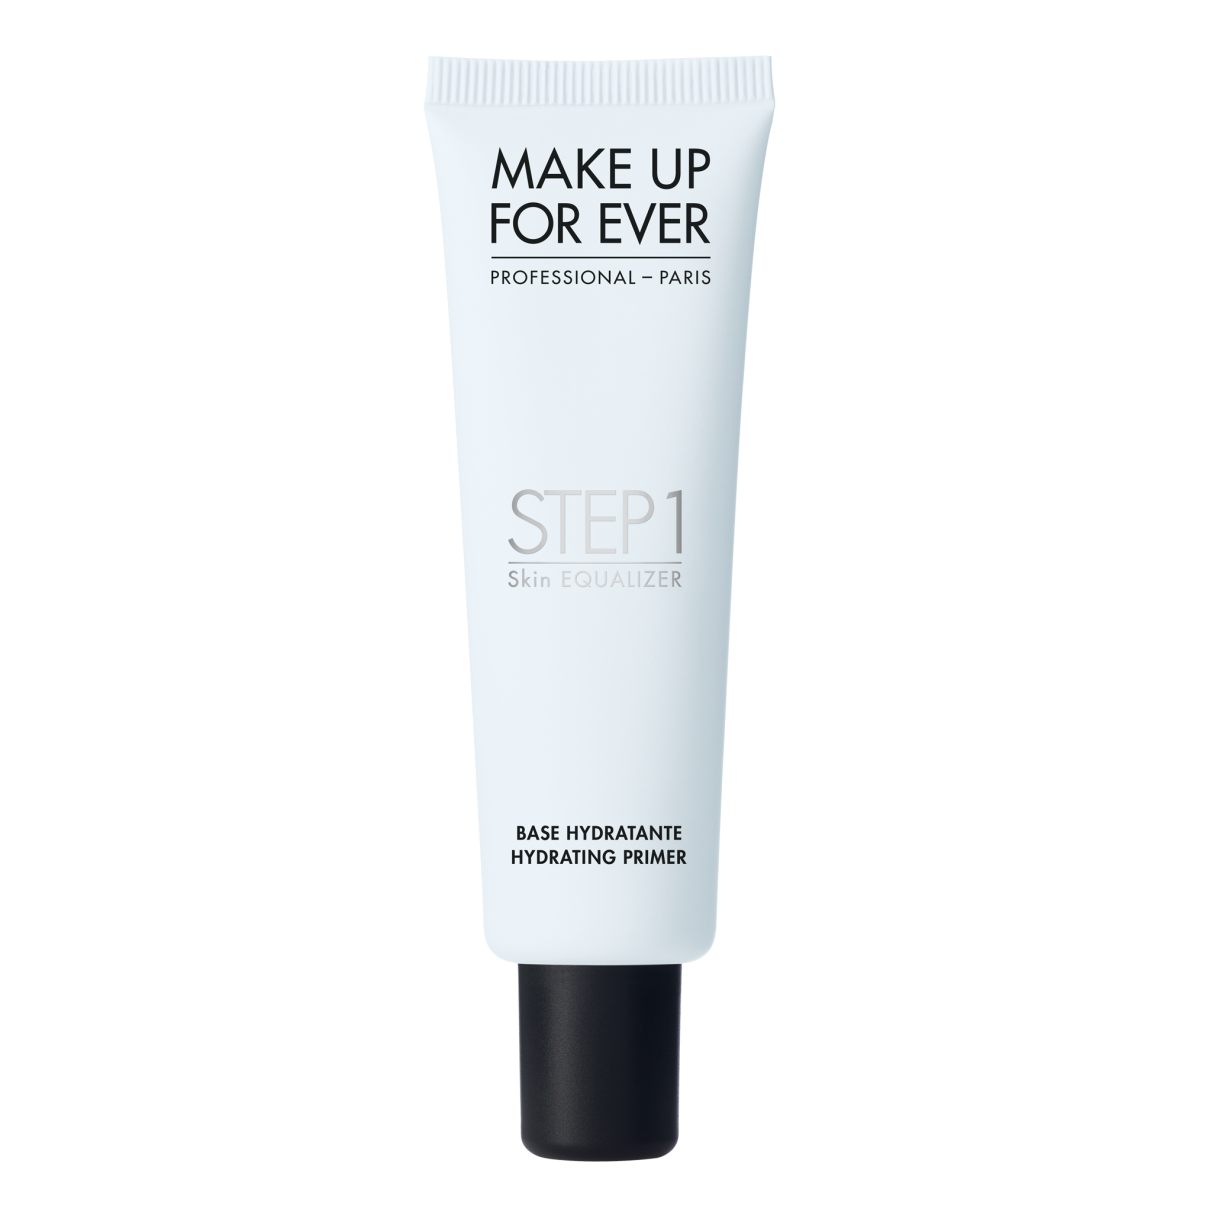 shuishi on (With images) Hydrating primer, Makeup